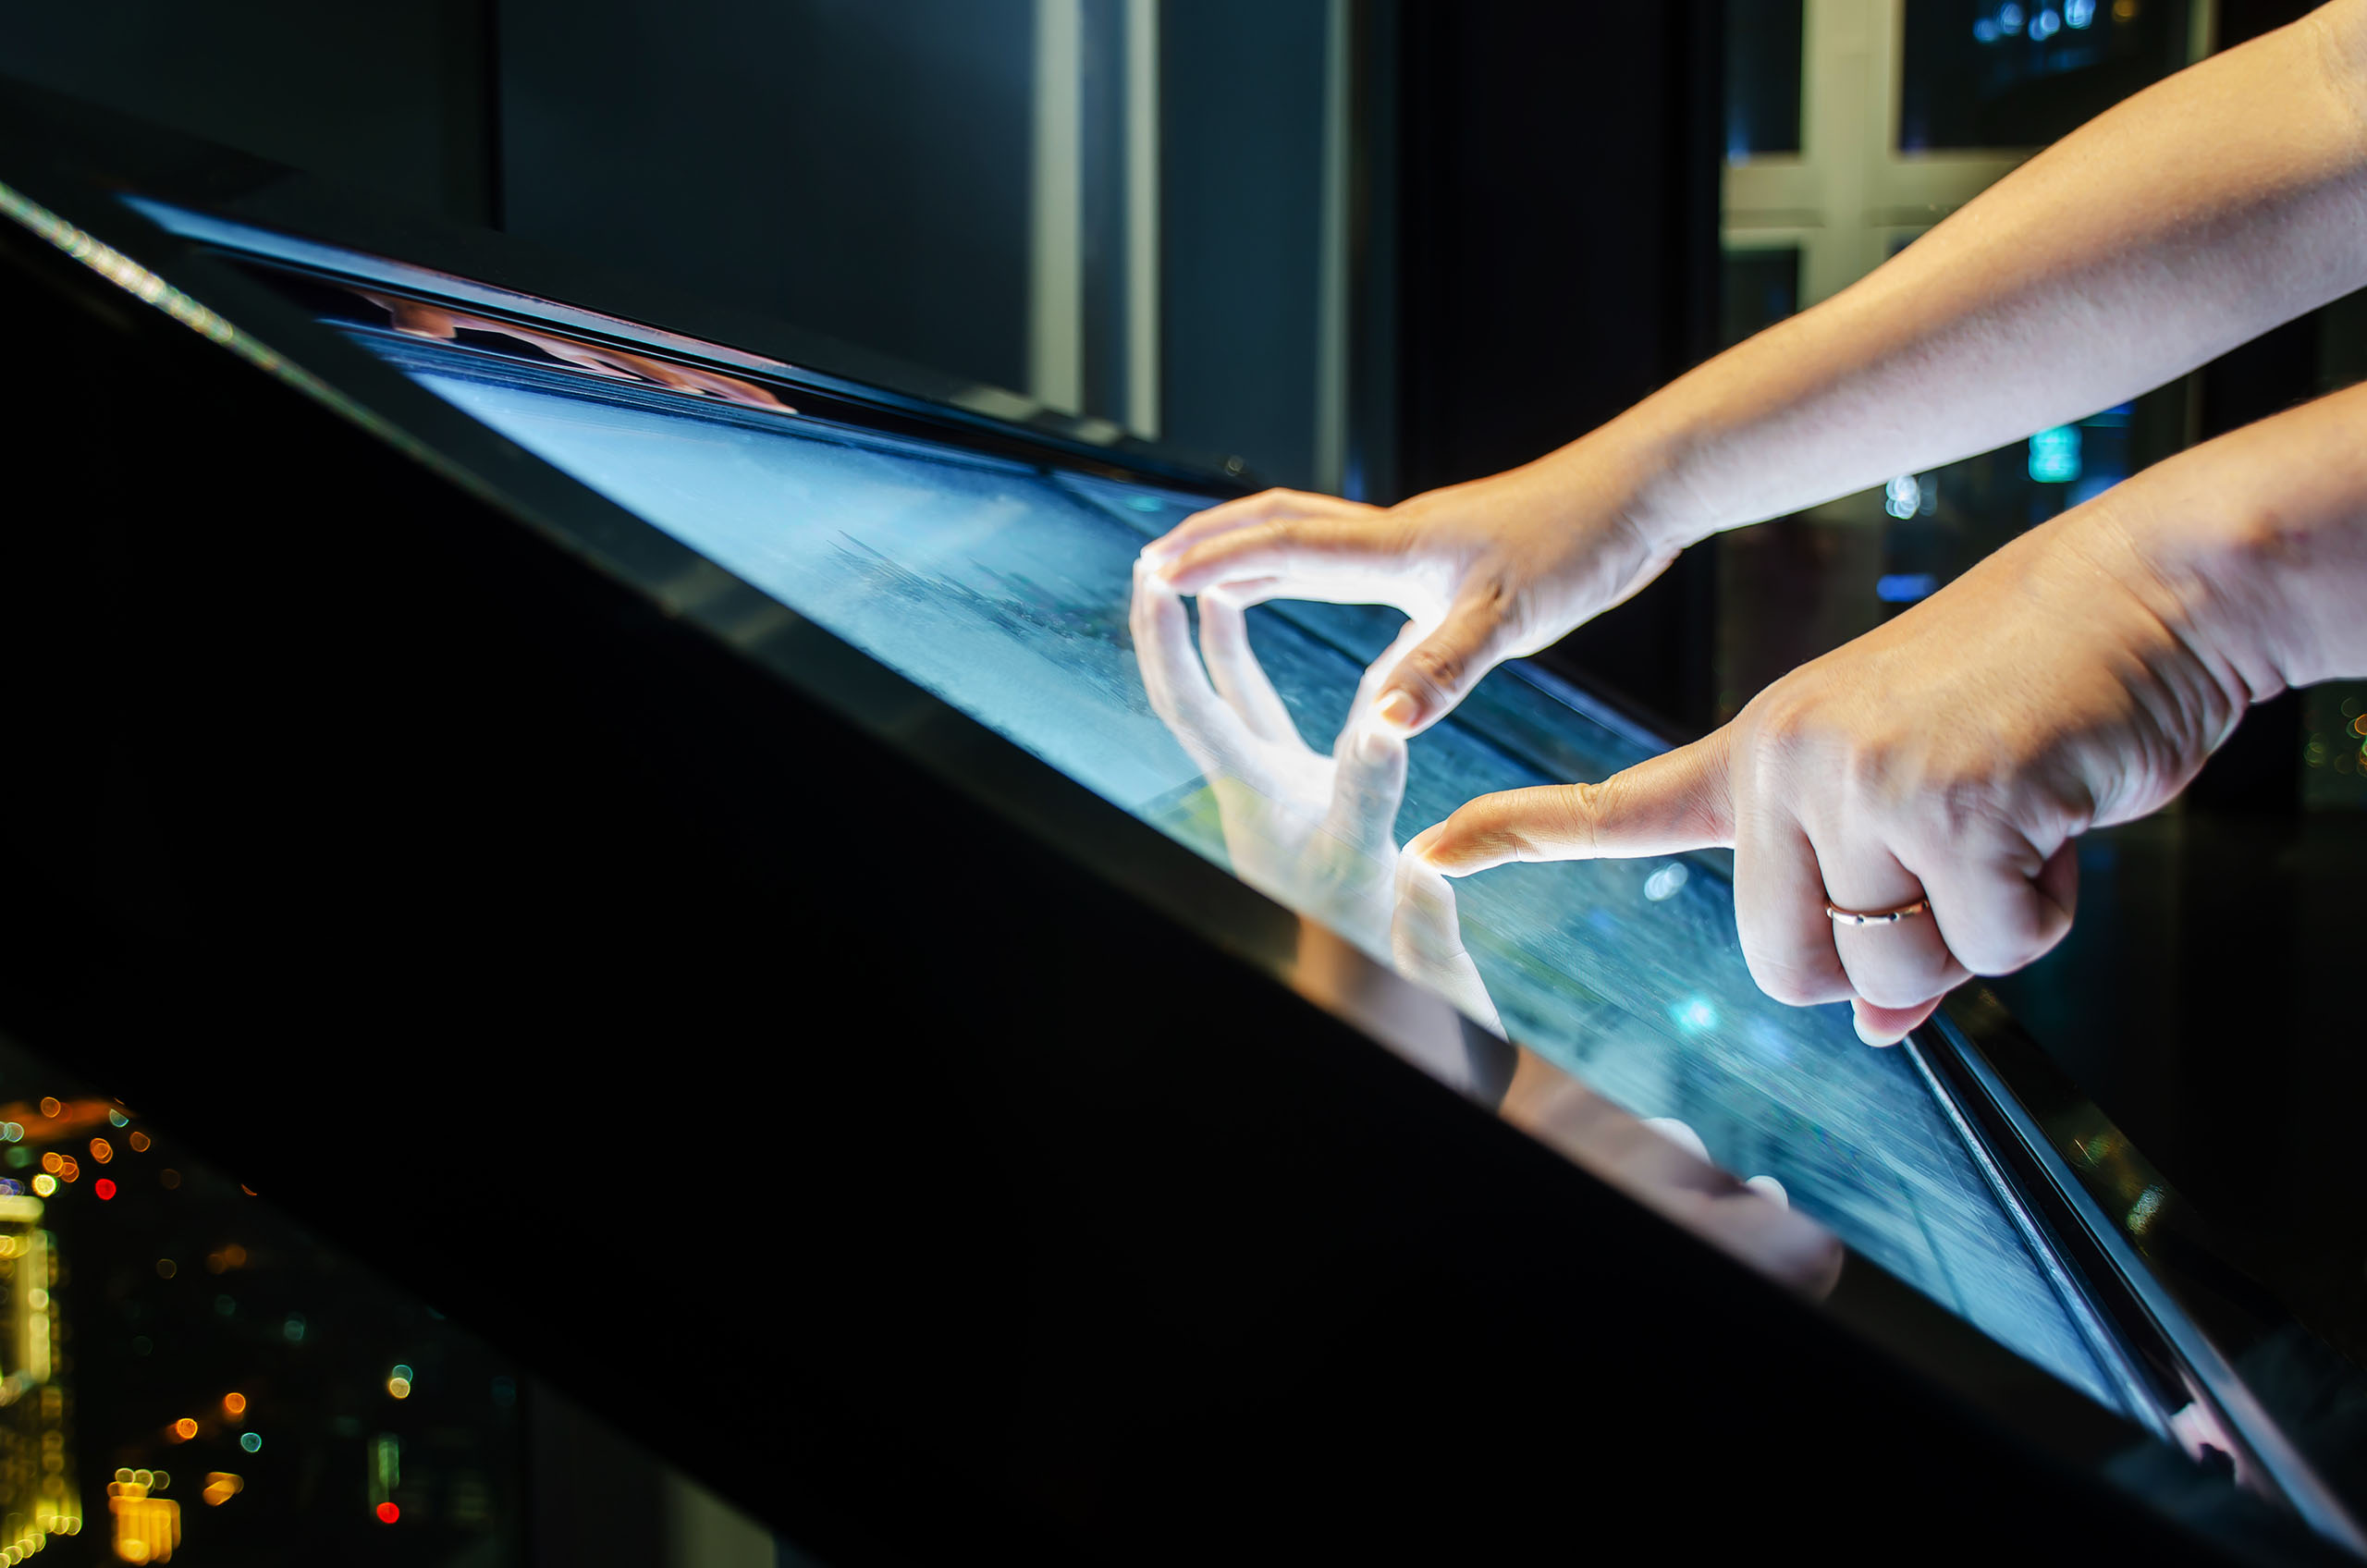 Touch Display